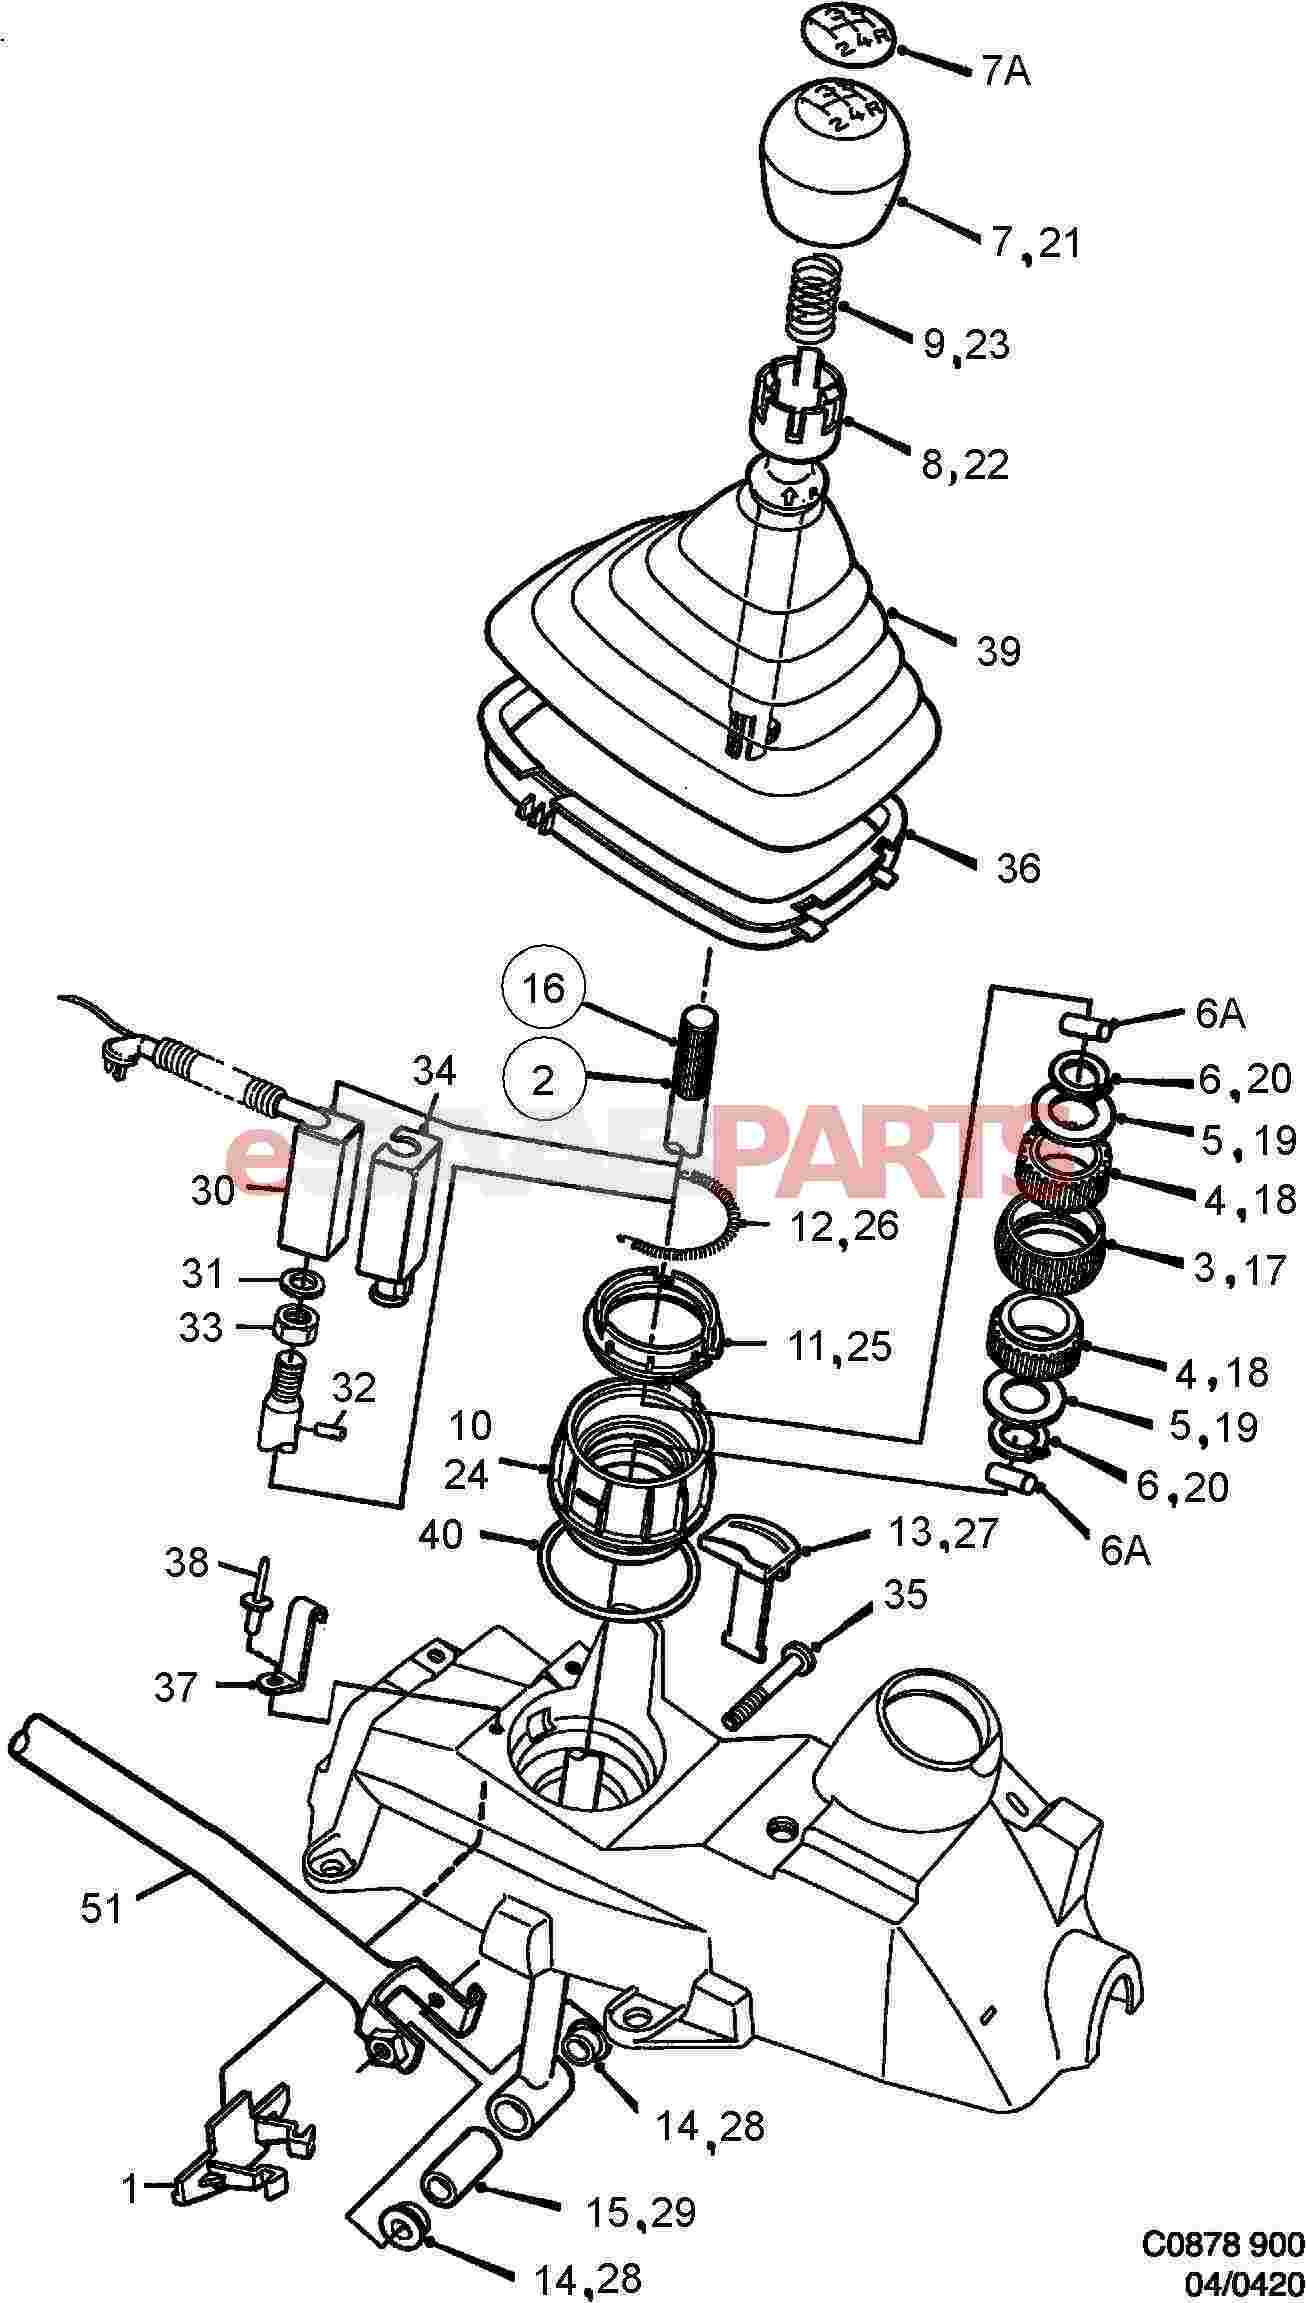 12785710 besides Honda Gl1500 Wiring Diagram besides Index php additionally Fuse Box Diagram For 2012 Ford Focus likewise 280633174196. on saab 9 3 parts